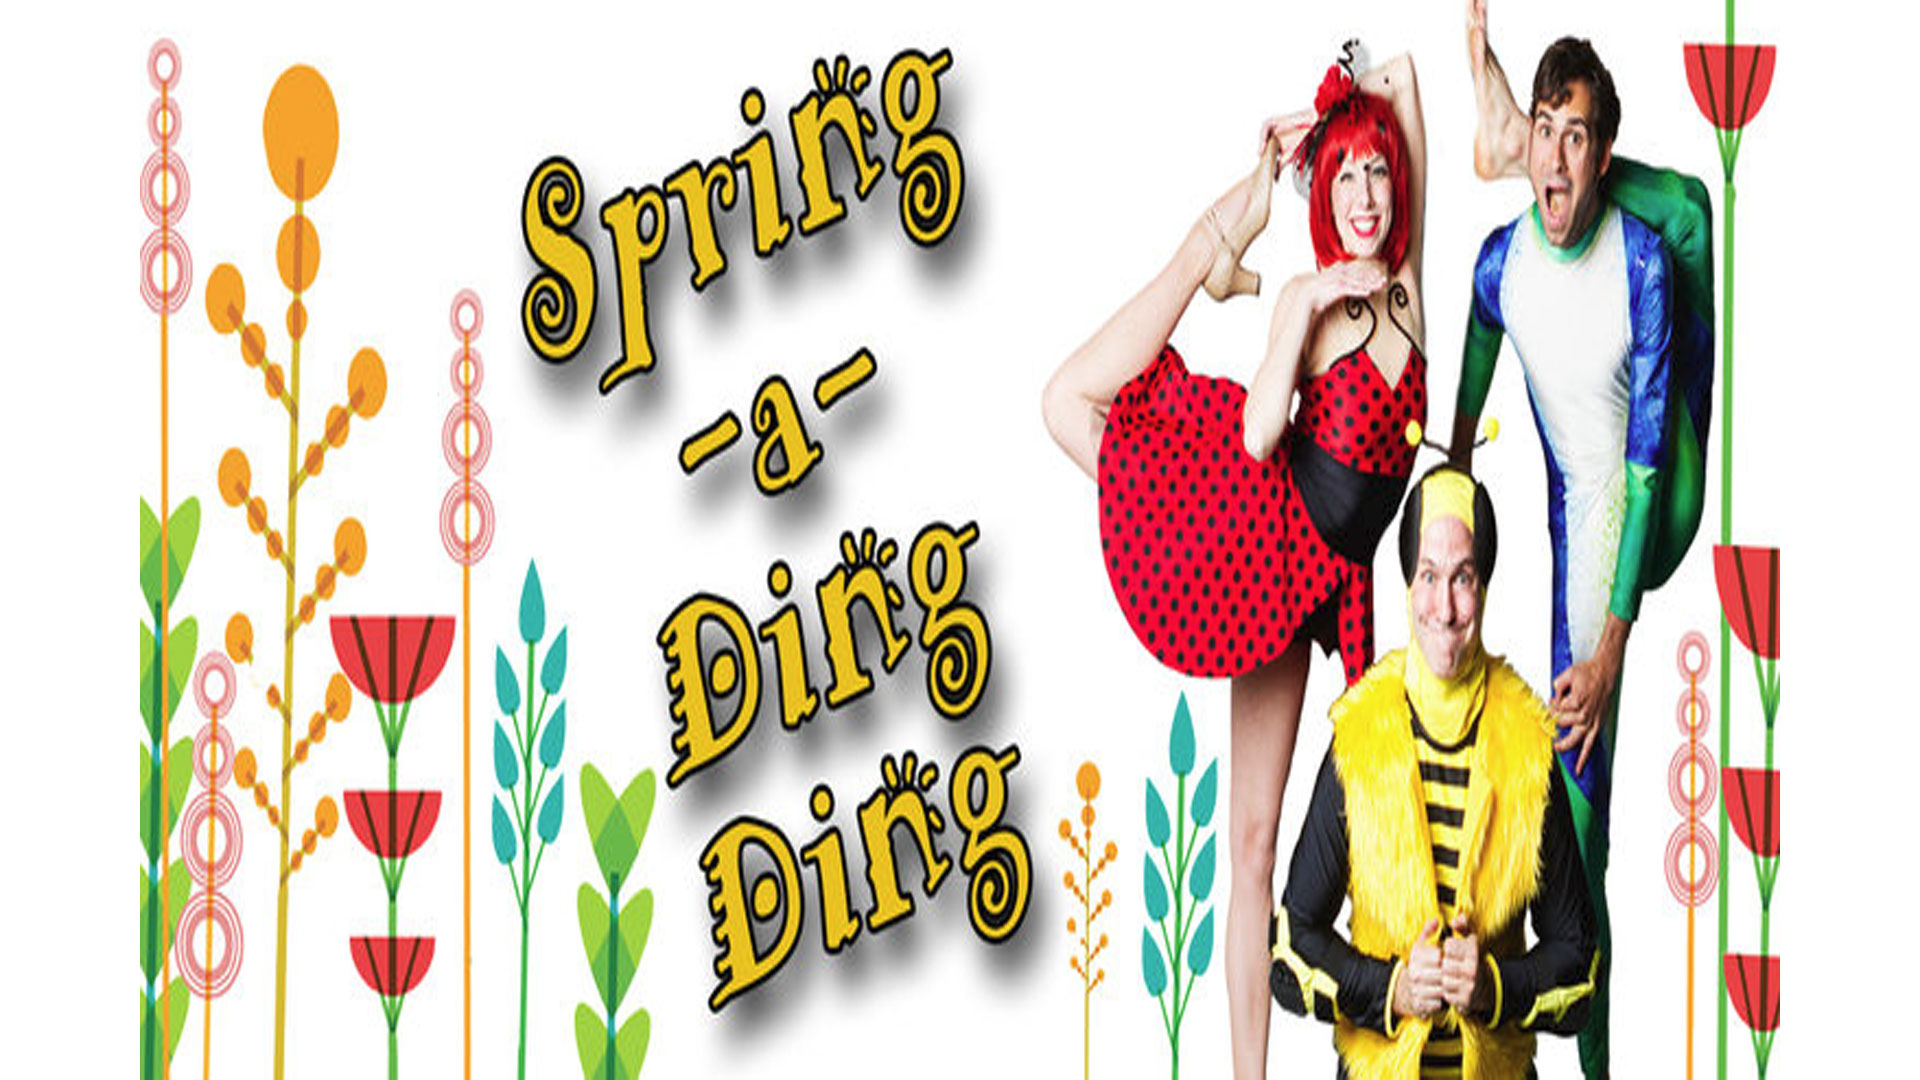 Cirquetacular's Spring-a-Ding DING . THIS WEEKEND through June 3rd!